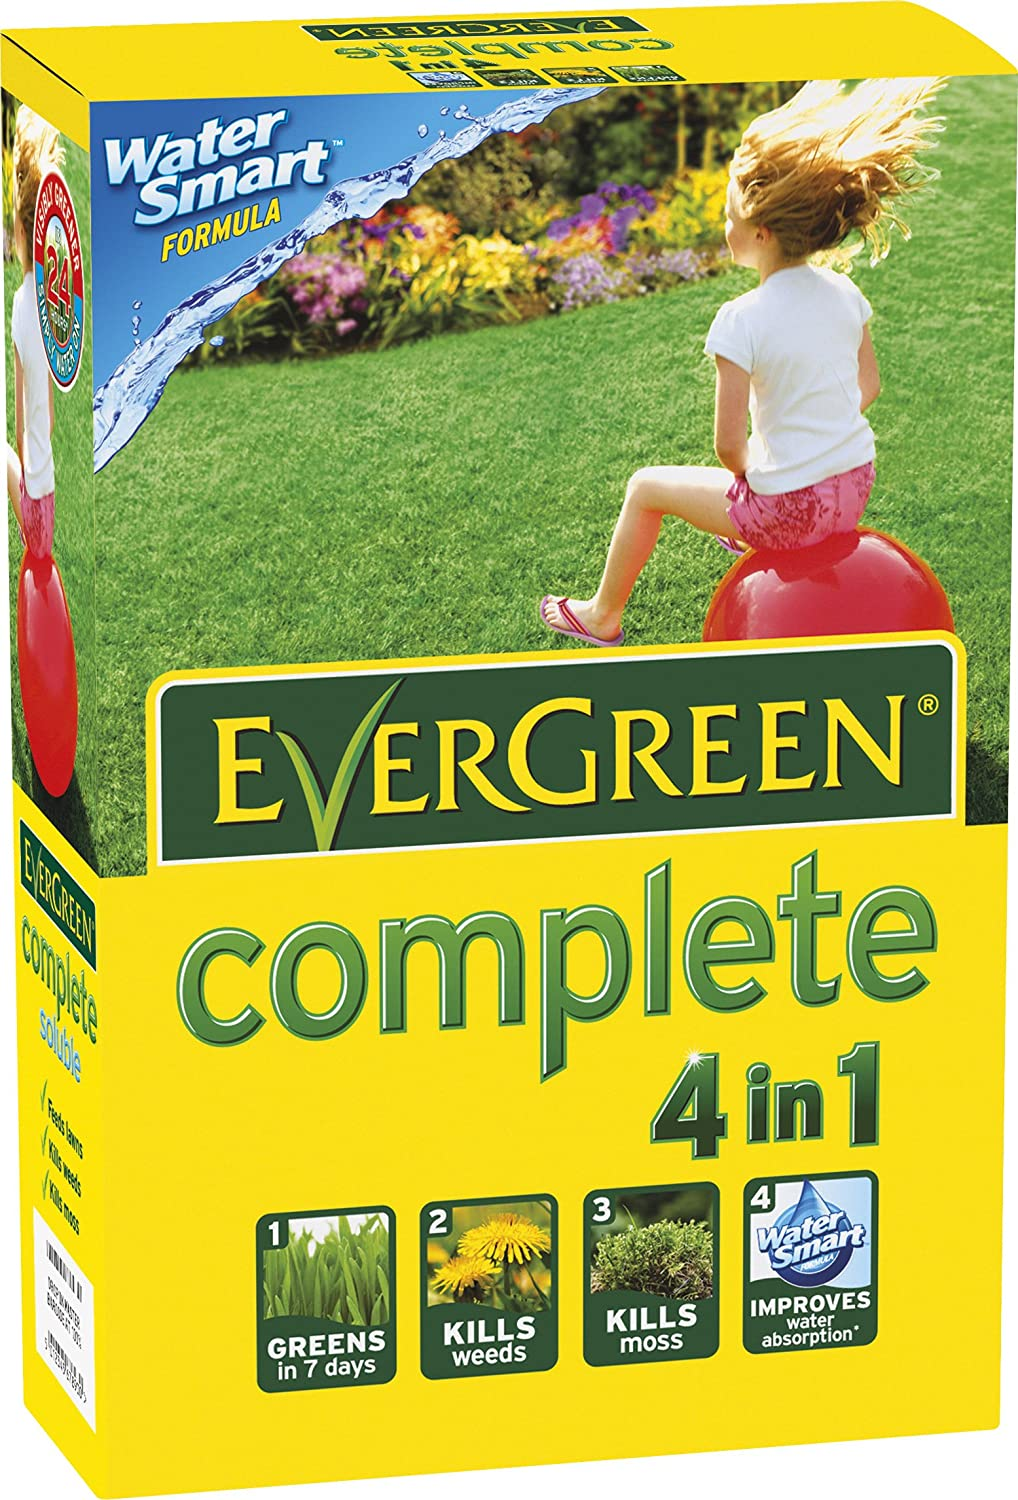 EverGreen 80sqm Complete Lawn Food/Weed/ Moss Killer Carton Evergreen Garden Care Ltd 017285